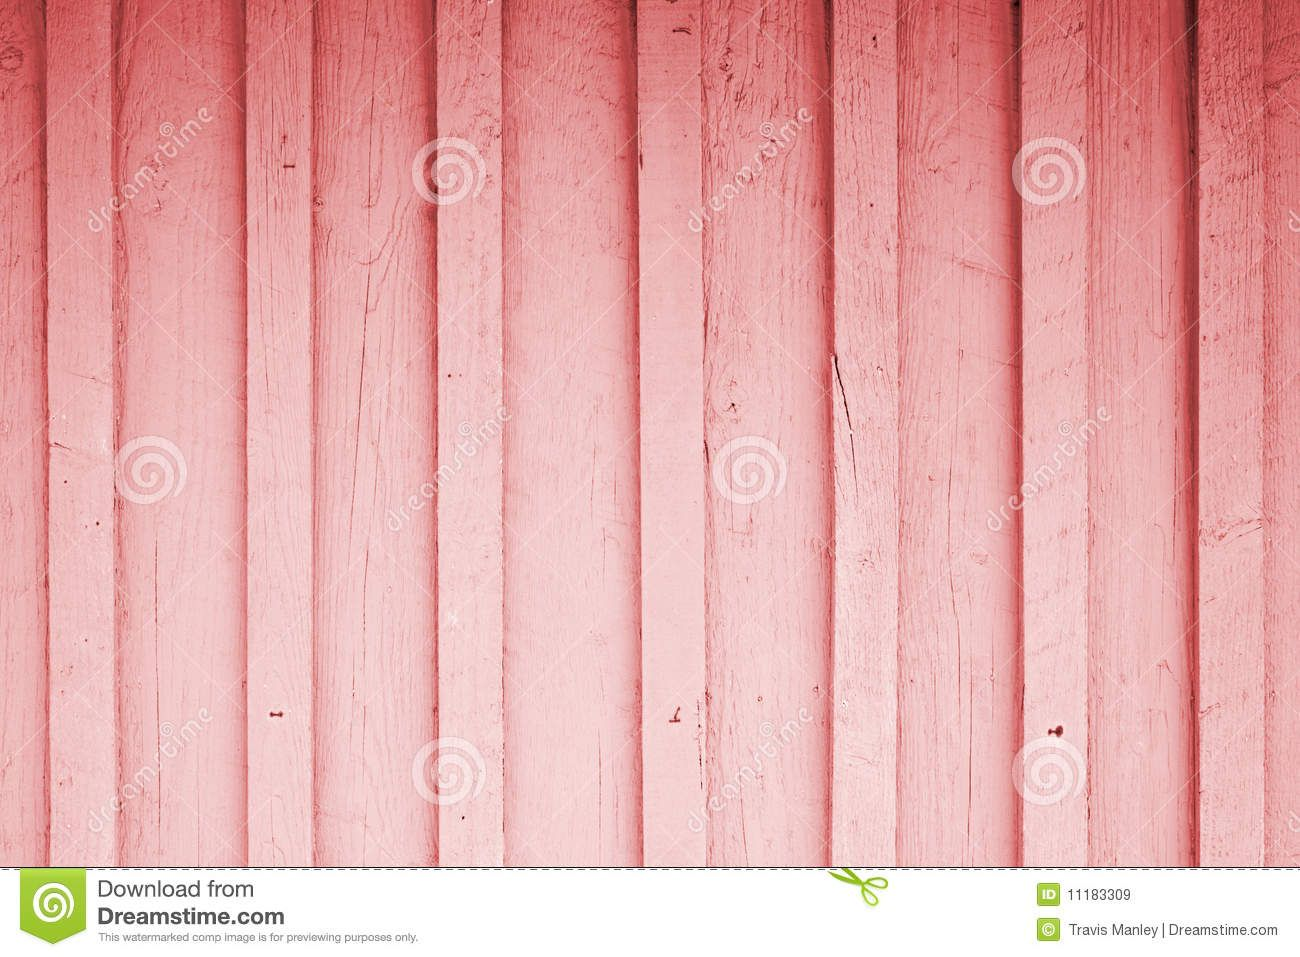 Images For Vertical Wood Siding Texture Holz